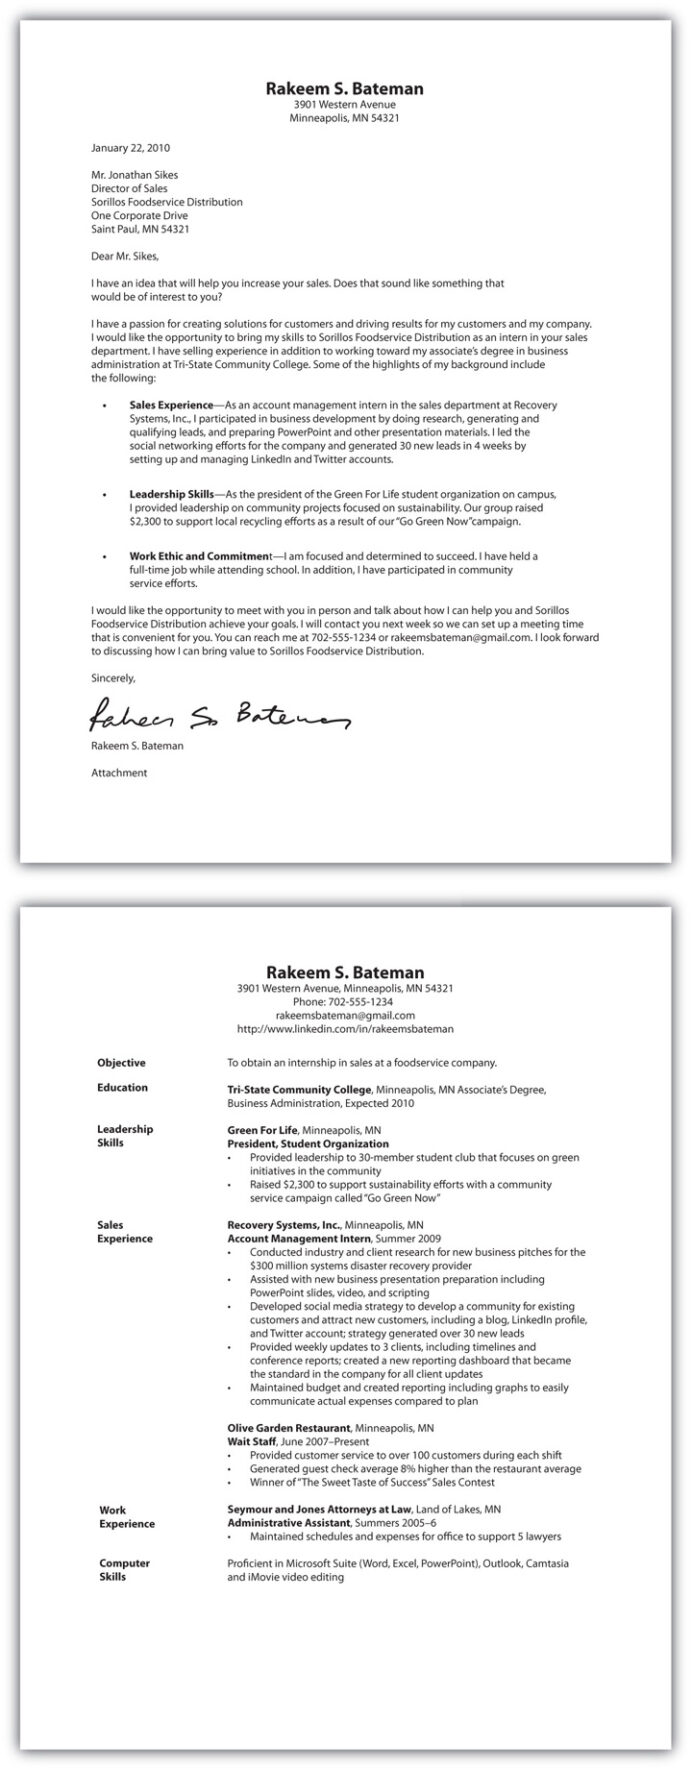 selling résumé and cover letter essentials best resume books unusual formats goals Resume Best Resume And Cover Letter Books